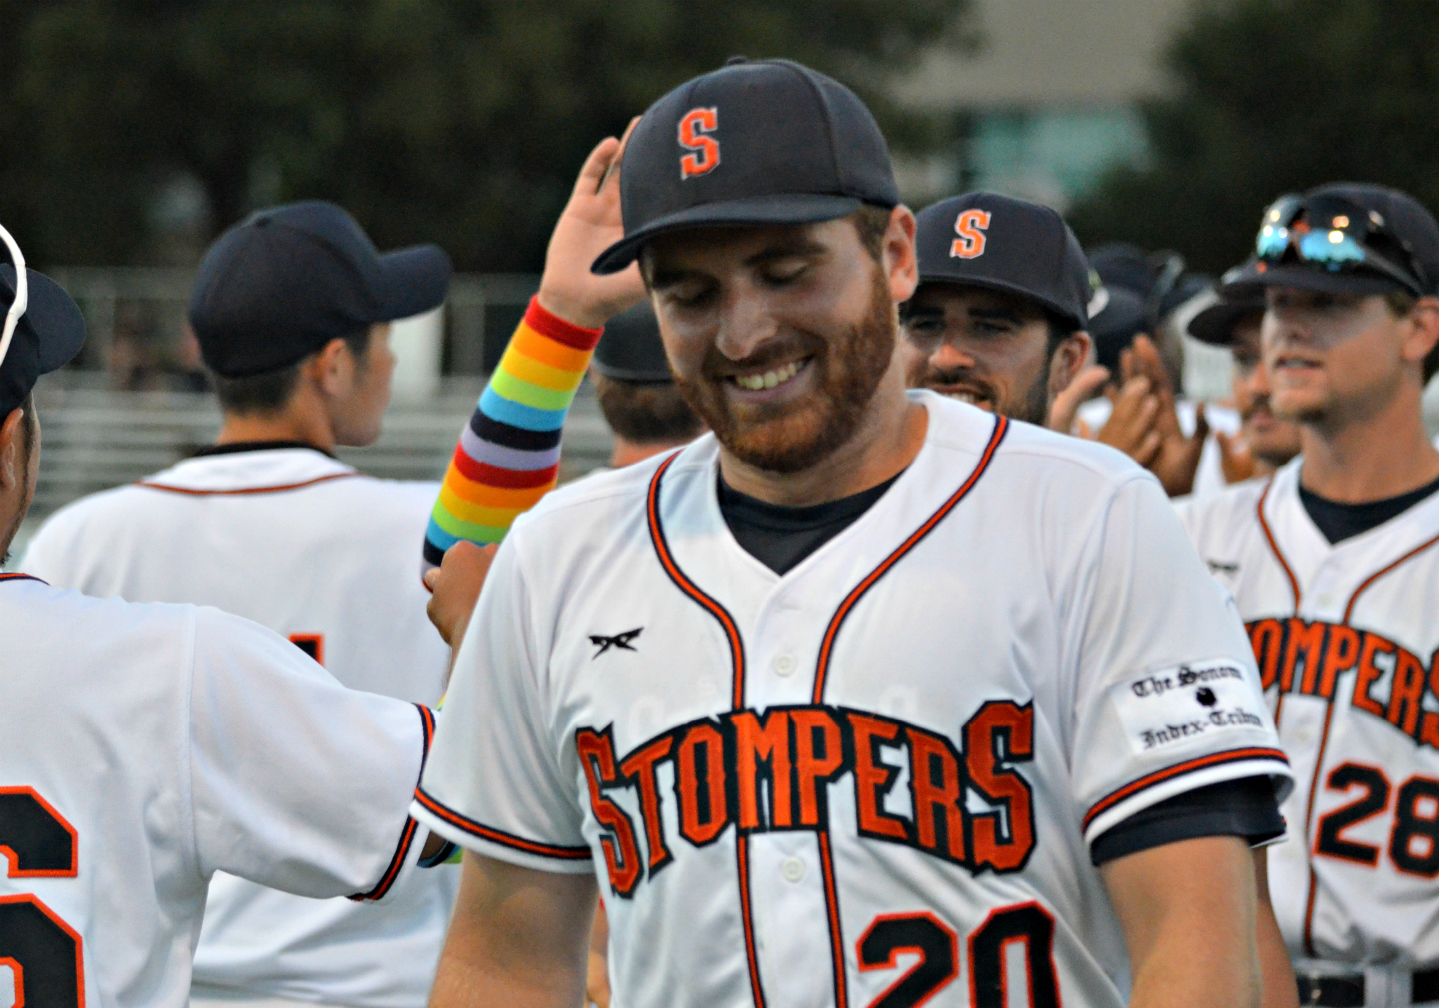 Sean Conroy smiles after his historic start on Thursday night.   James Toy III/Sonoma Stompers